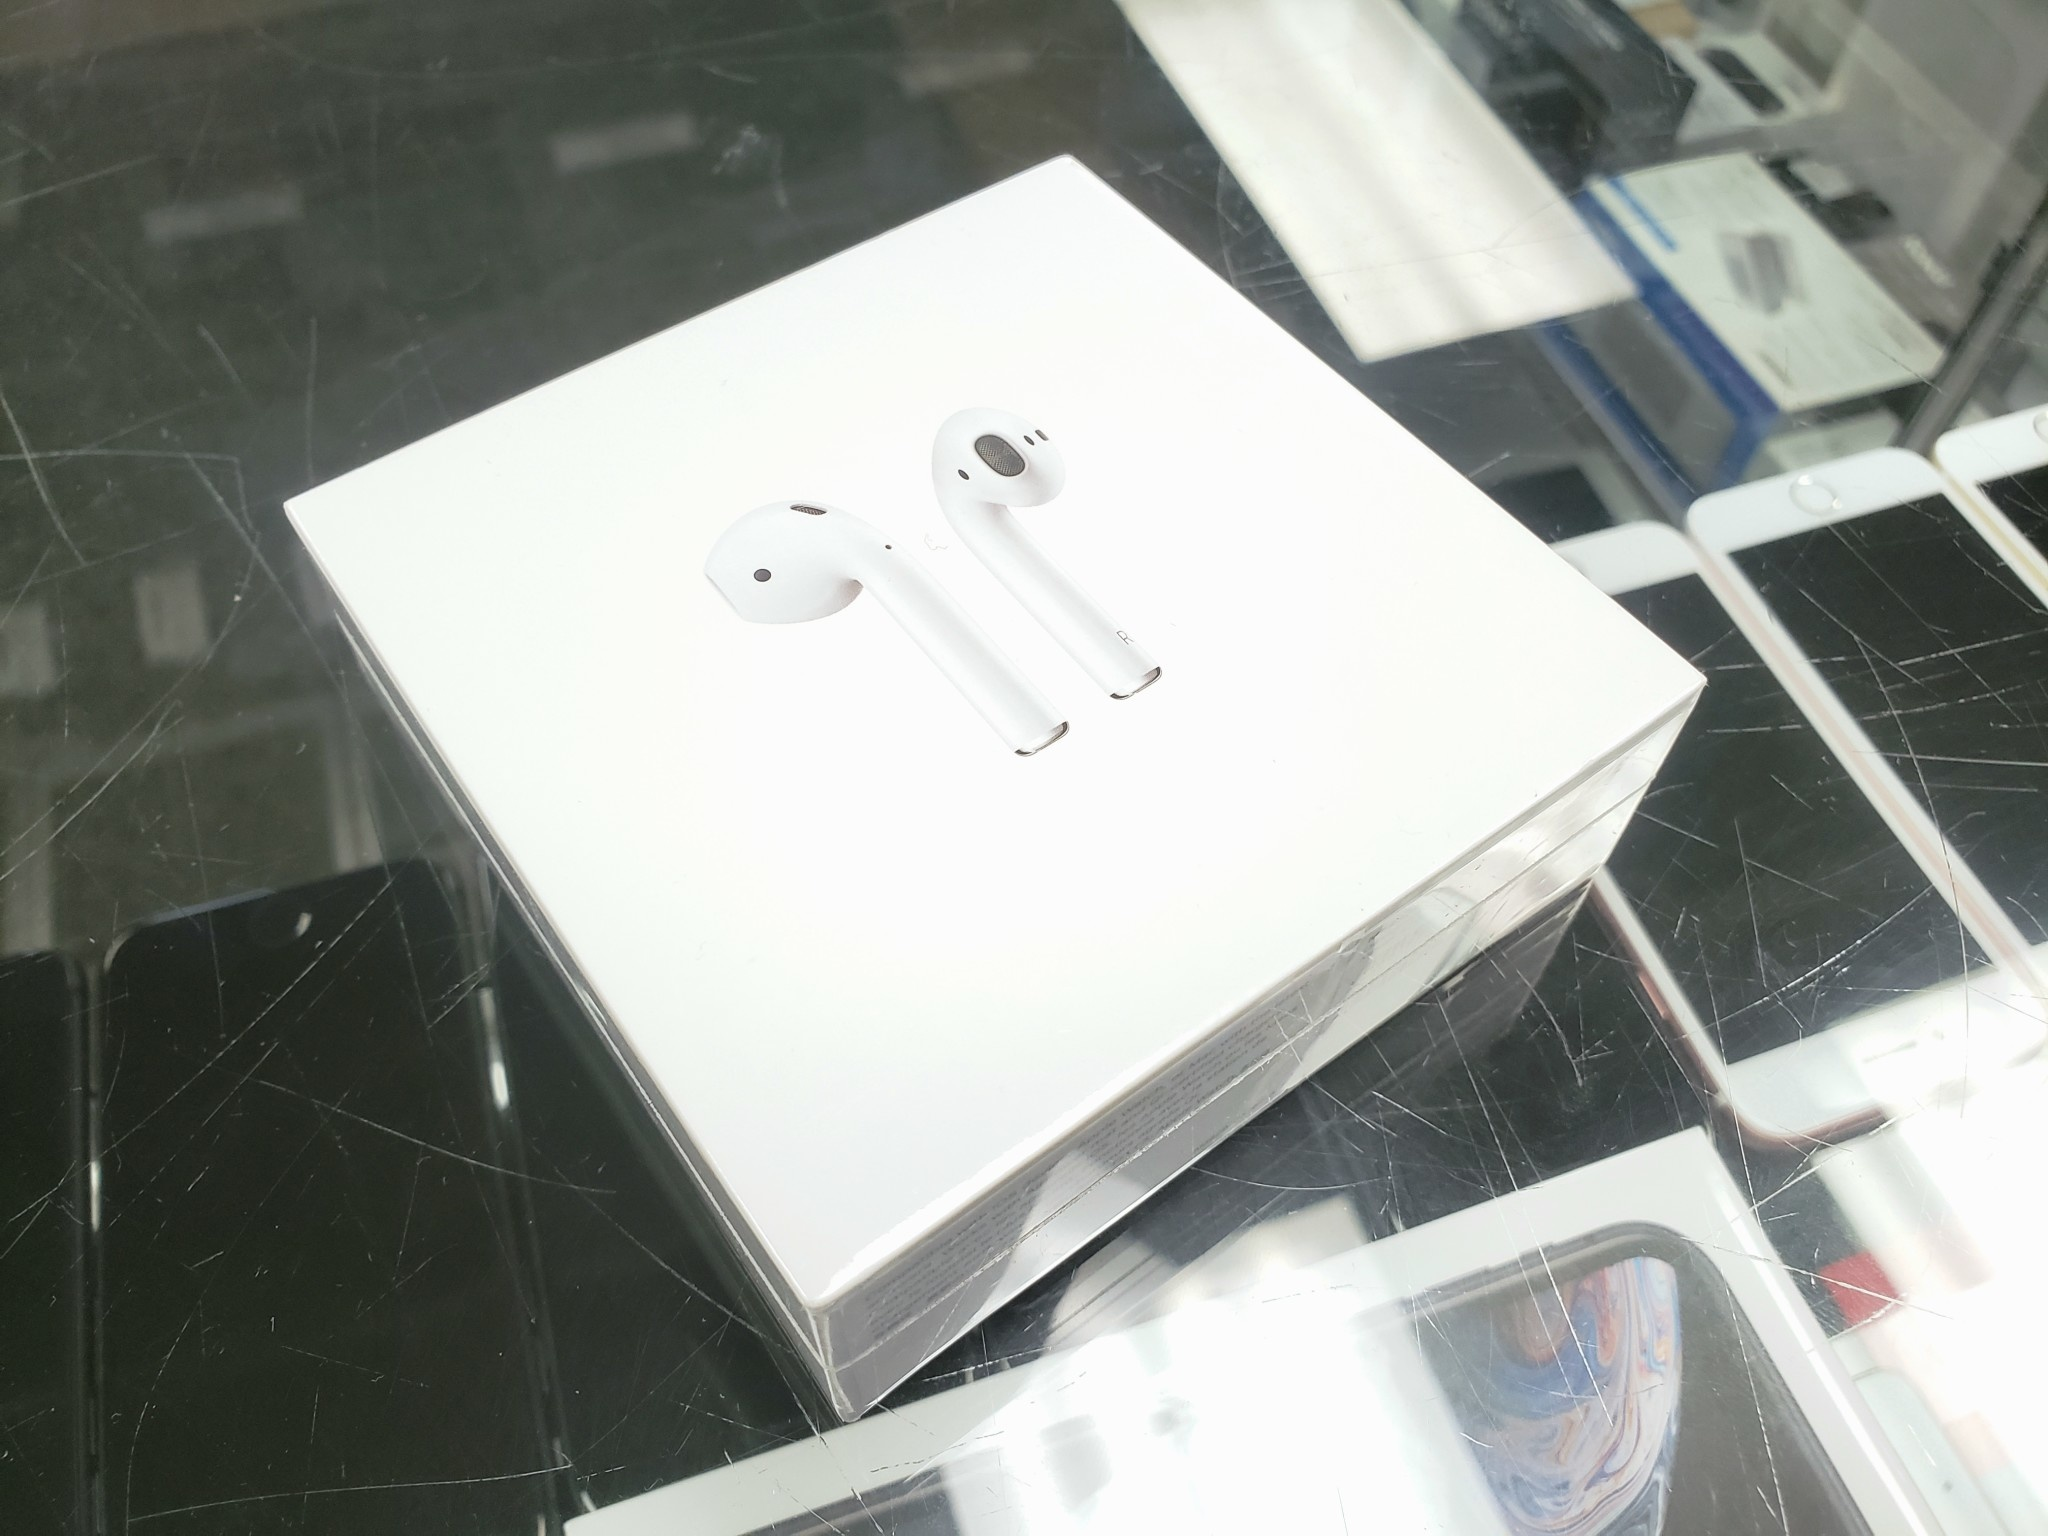 Factory Sealed - Apple Airpods 2 with Charging Case